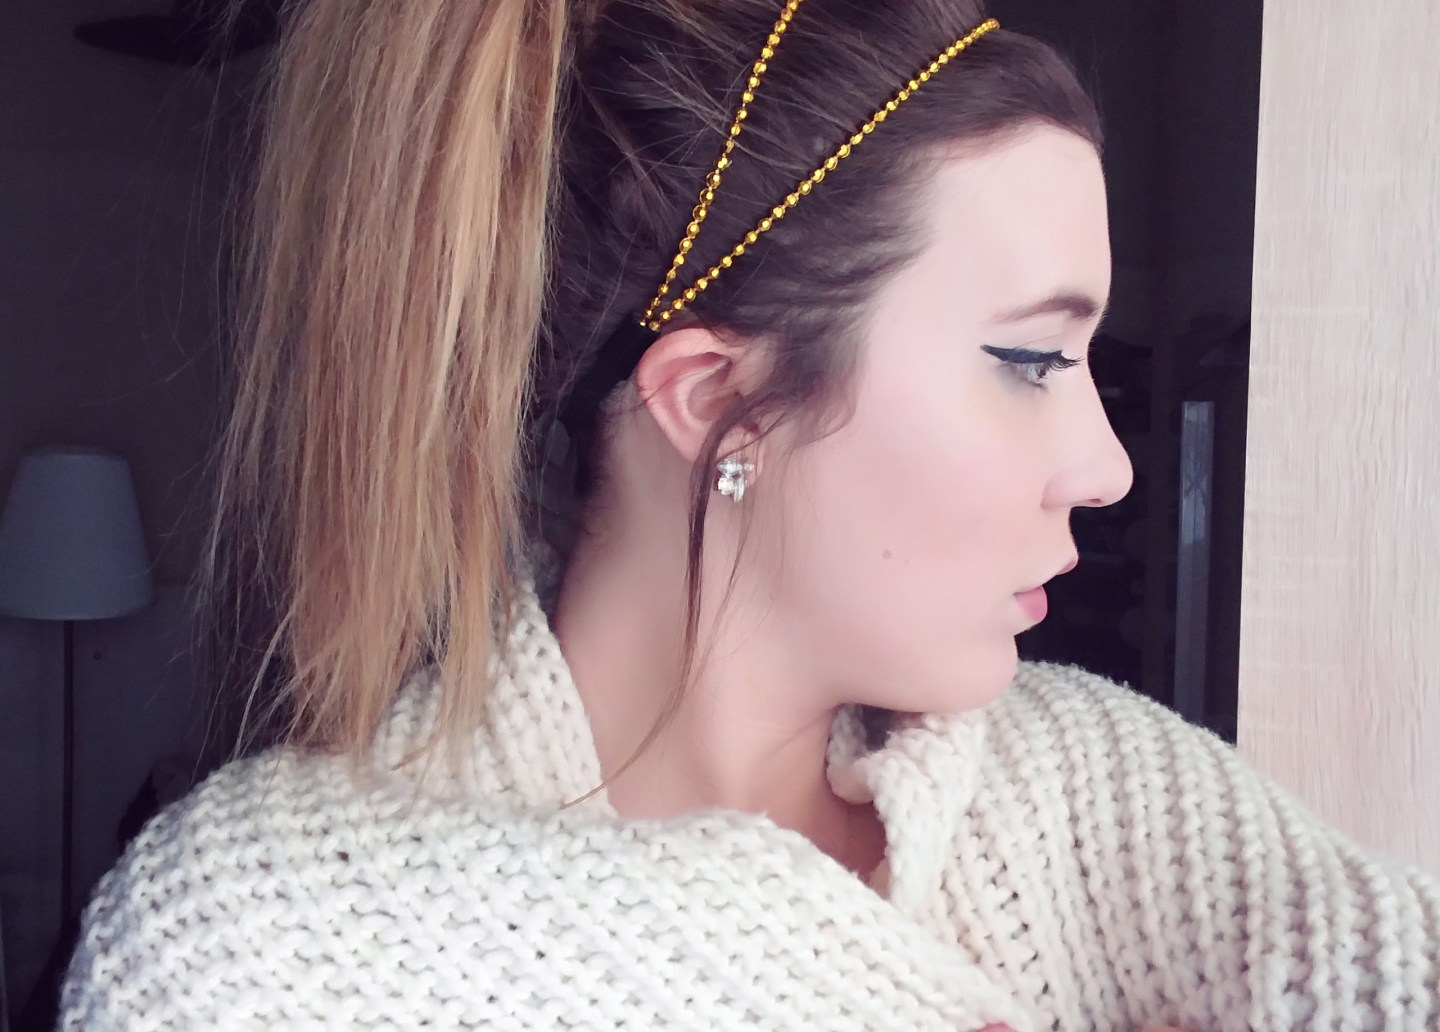 headband tuto cheveux coiffure accessoire hair blog conseils comment coiffer